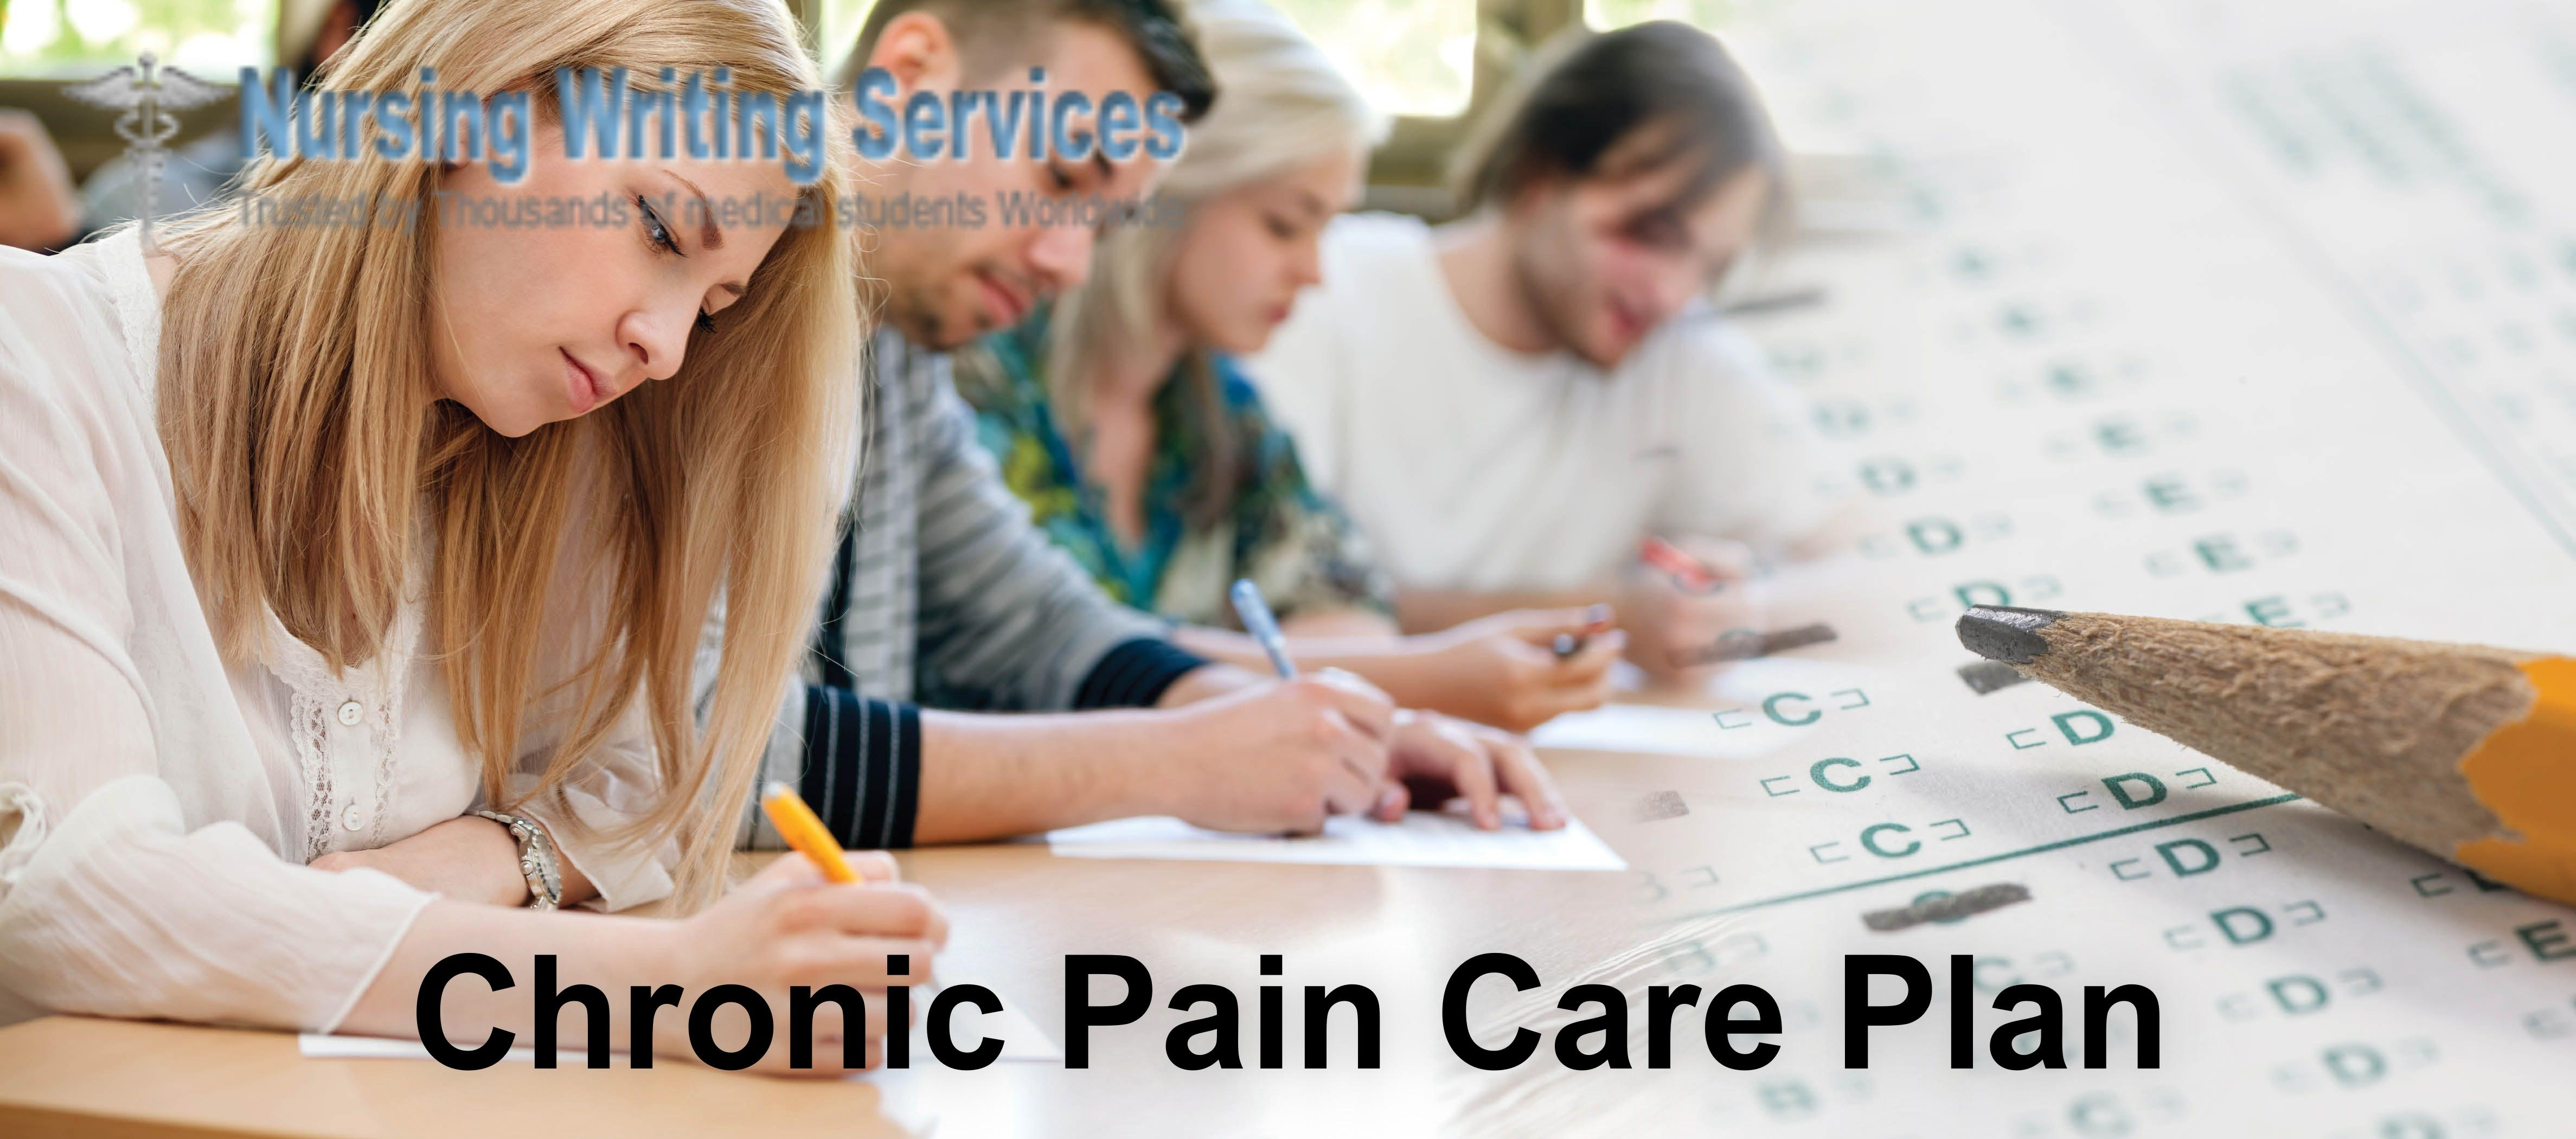 Chronic Pain Care Plan Writing Services